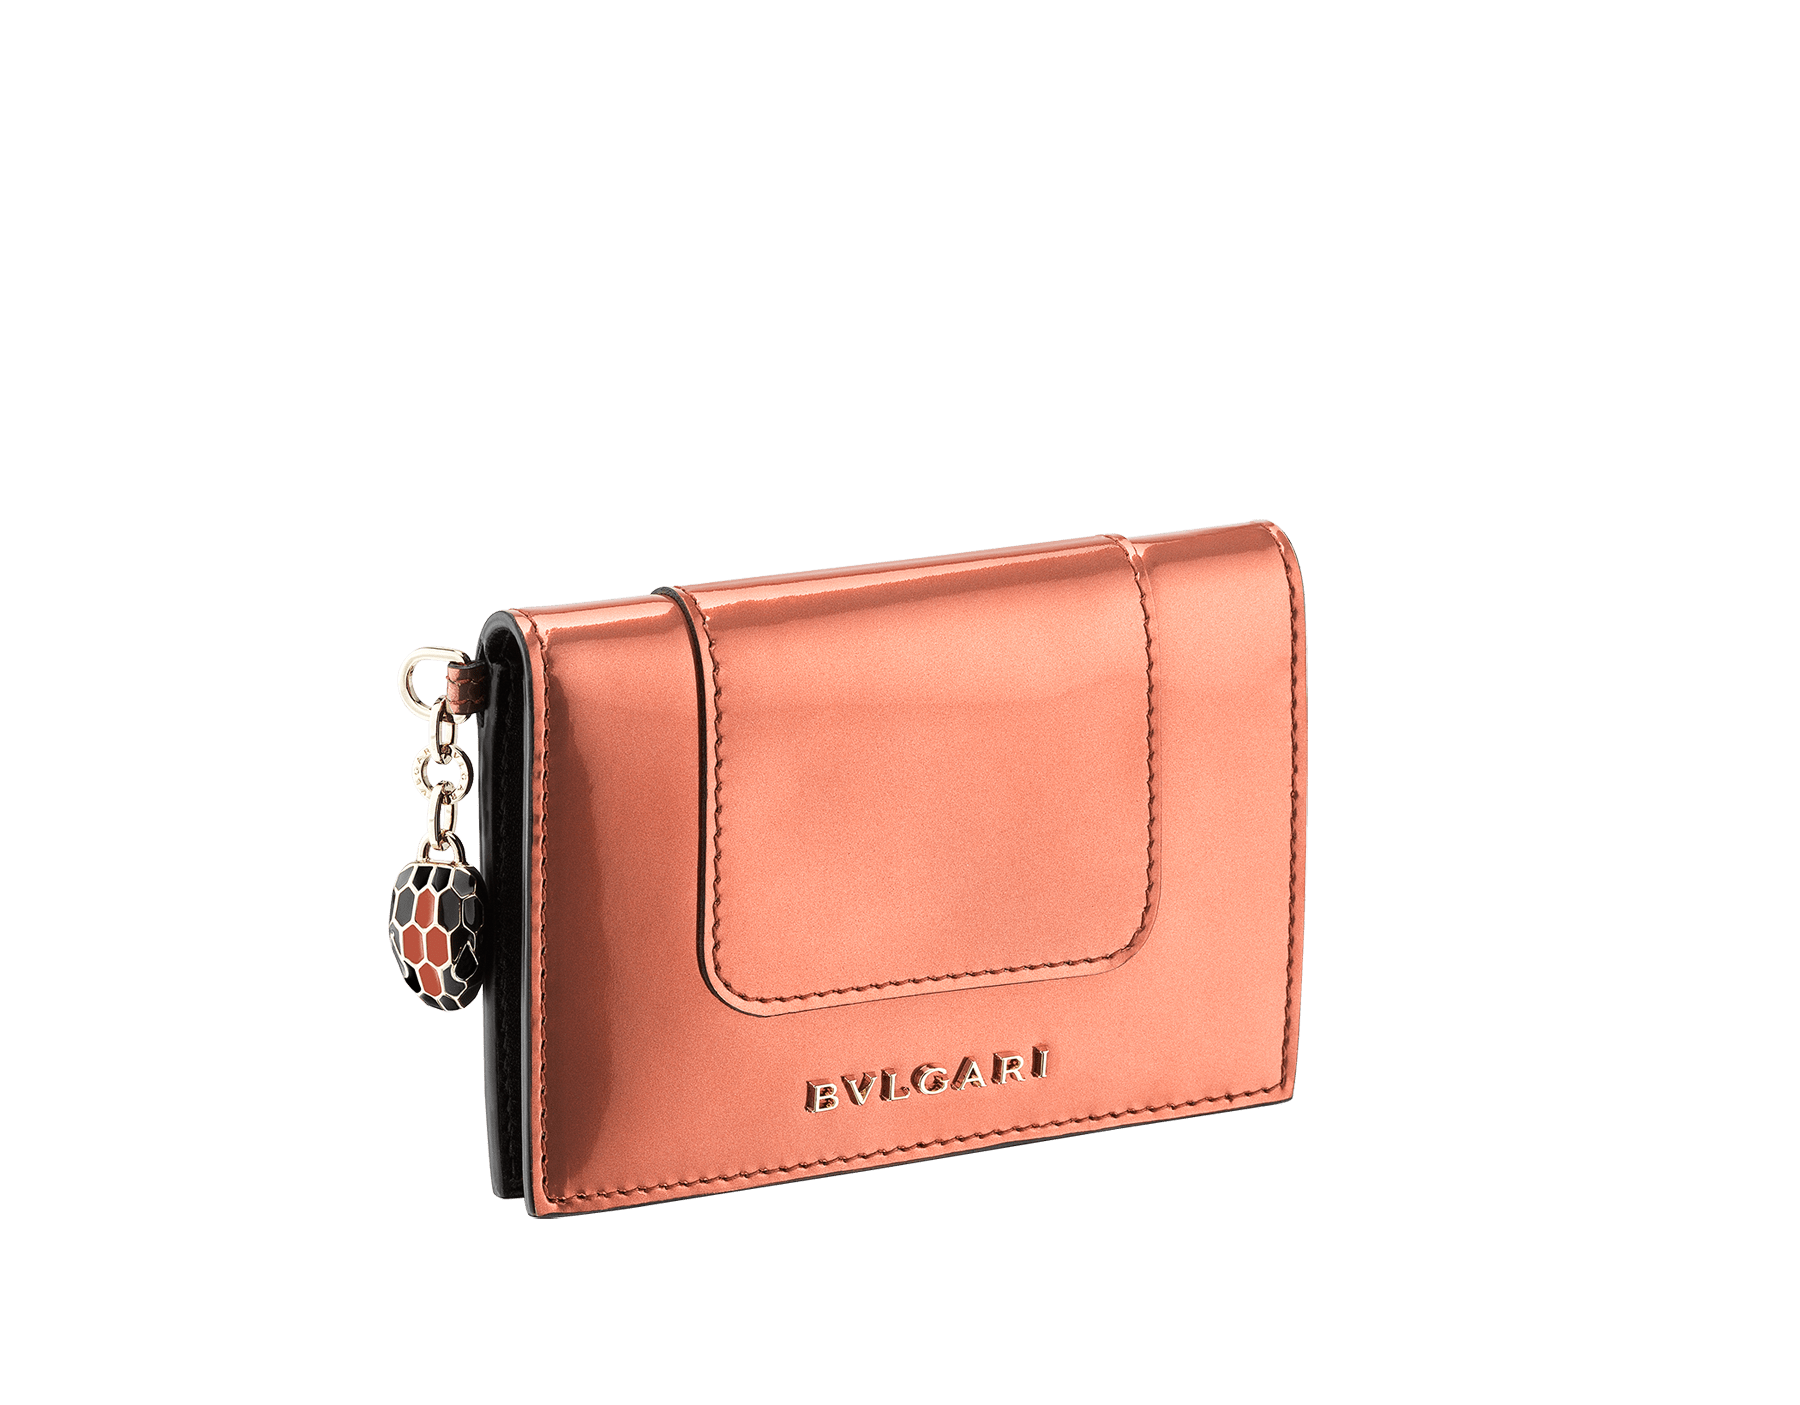 Folded credit card holder in rose quartz brushed metallic calf leather, with brass light gold plated hardware and stud closure. Serpenti head charm in black and white enamel, with green enamel eyes. SEA-CC-HOLDER-FOLD-BMCLa image 1